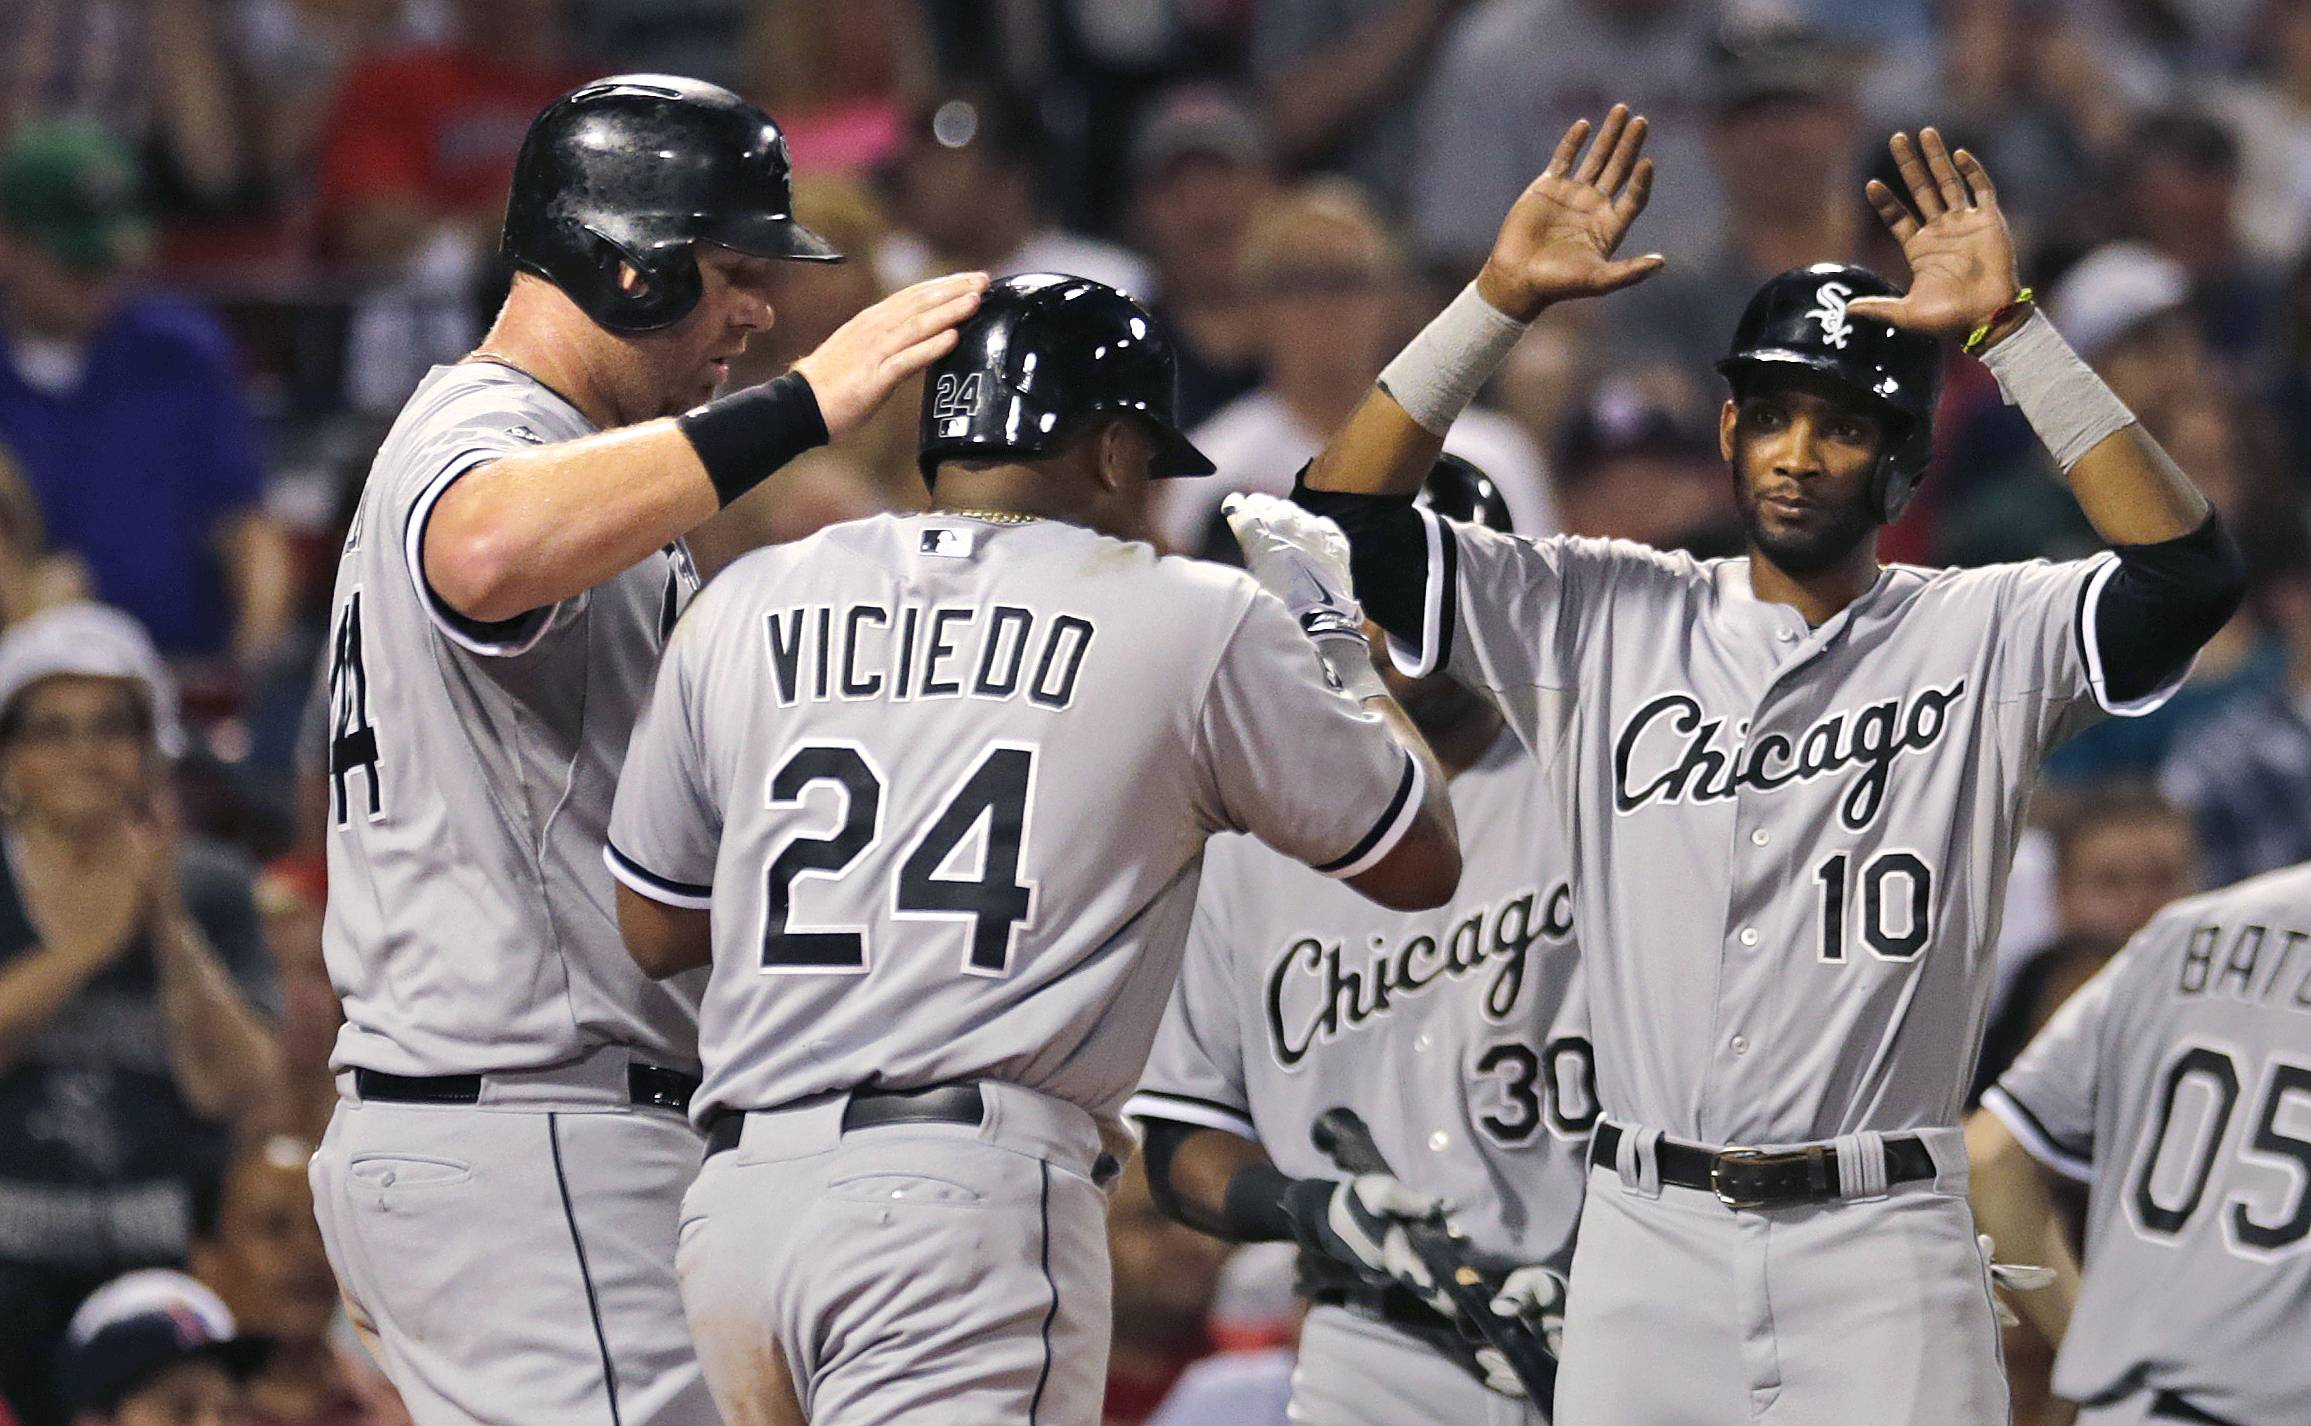 White Sox' Dayan Viciedo (24) is congratulated by teammates Adam Dunn, left, and Alexei Ramirez (10) after his three-run, home run off Boston Red Sox starting pitcher Clay Buchholz during the fourth inning of a baseball game at Fenway Park in Boston, Monday, July 7, 2014.